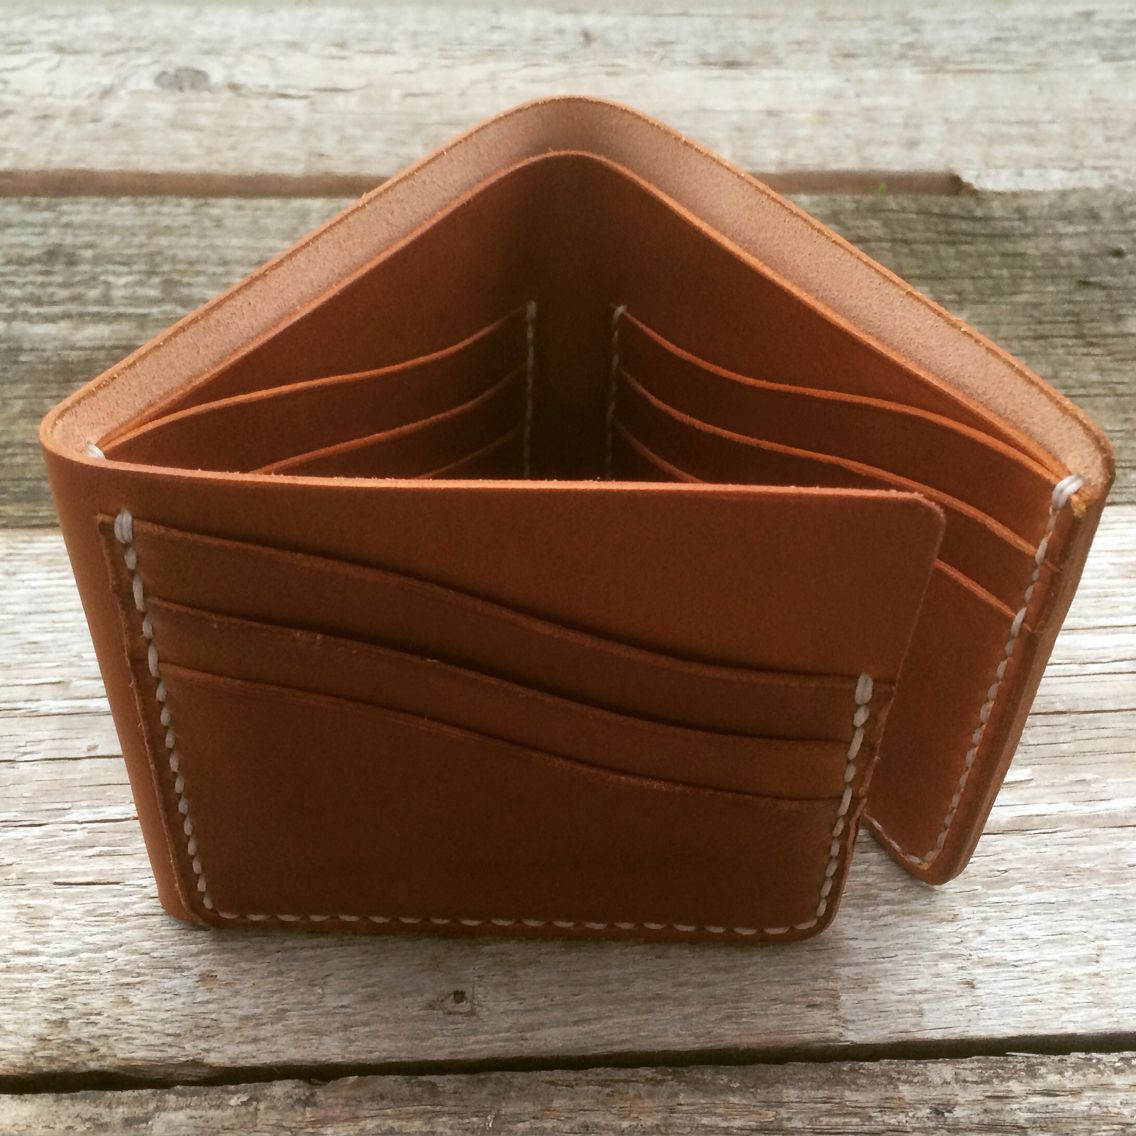 Krysl Leather Goods handmade trifold wallet